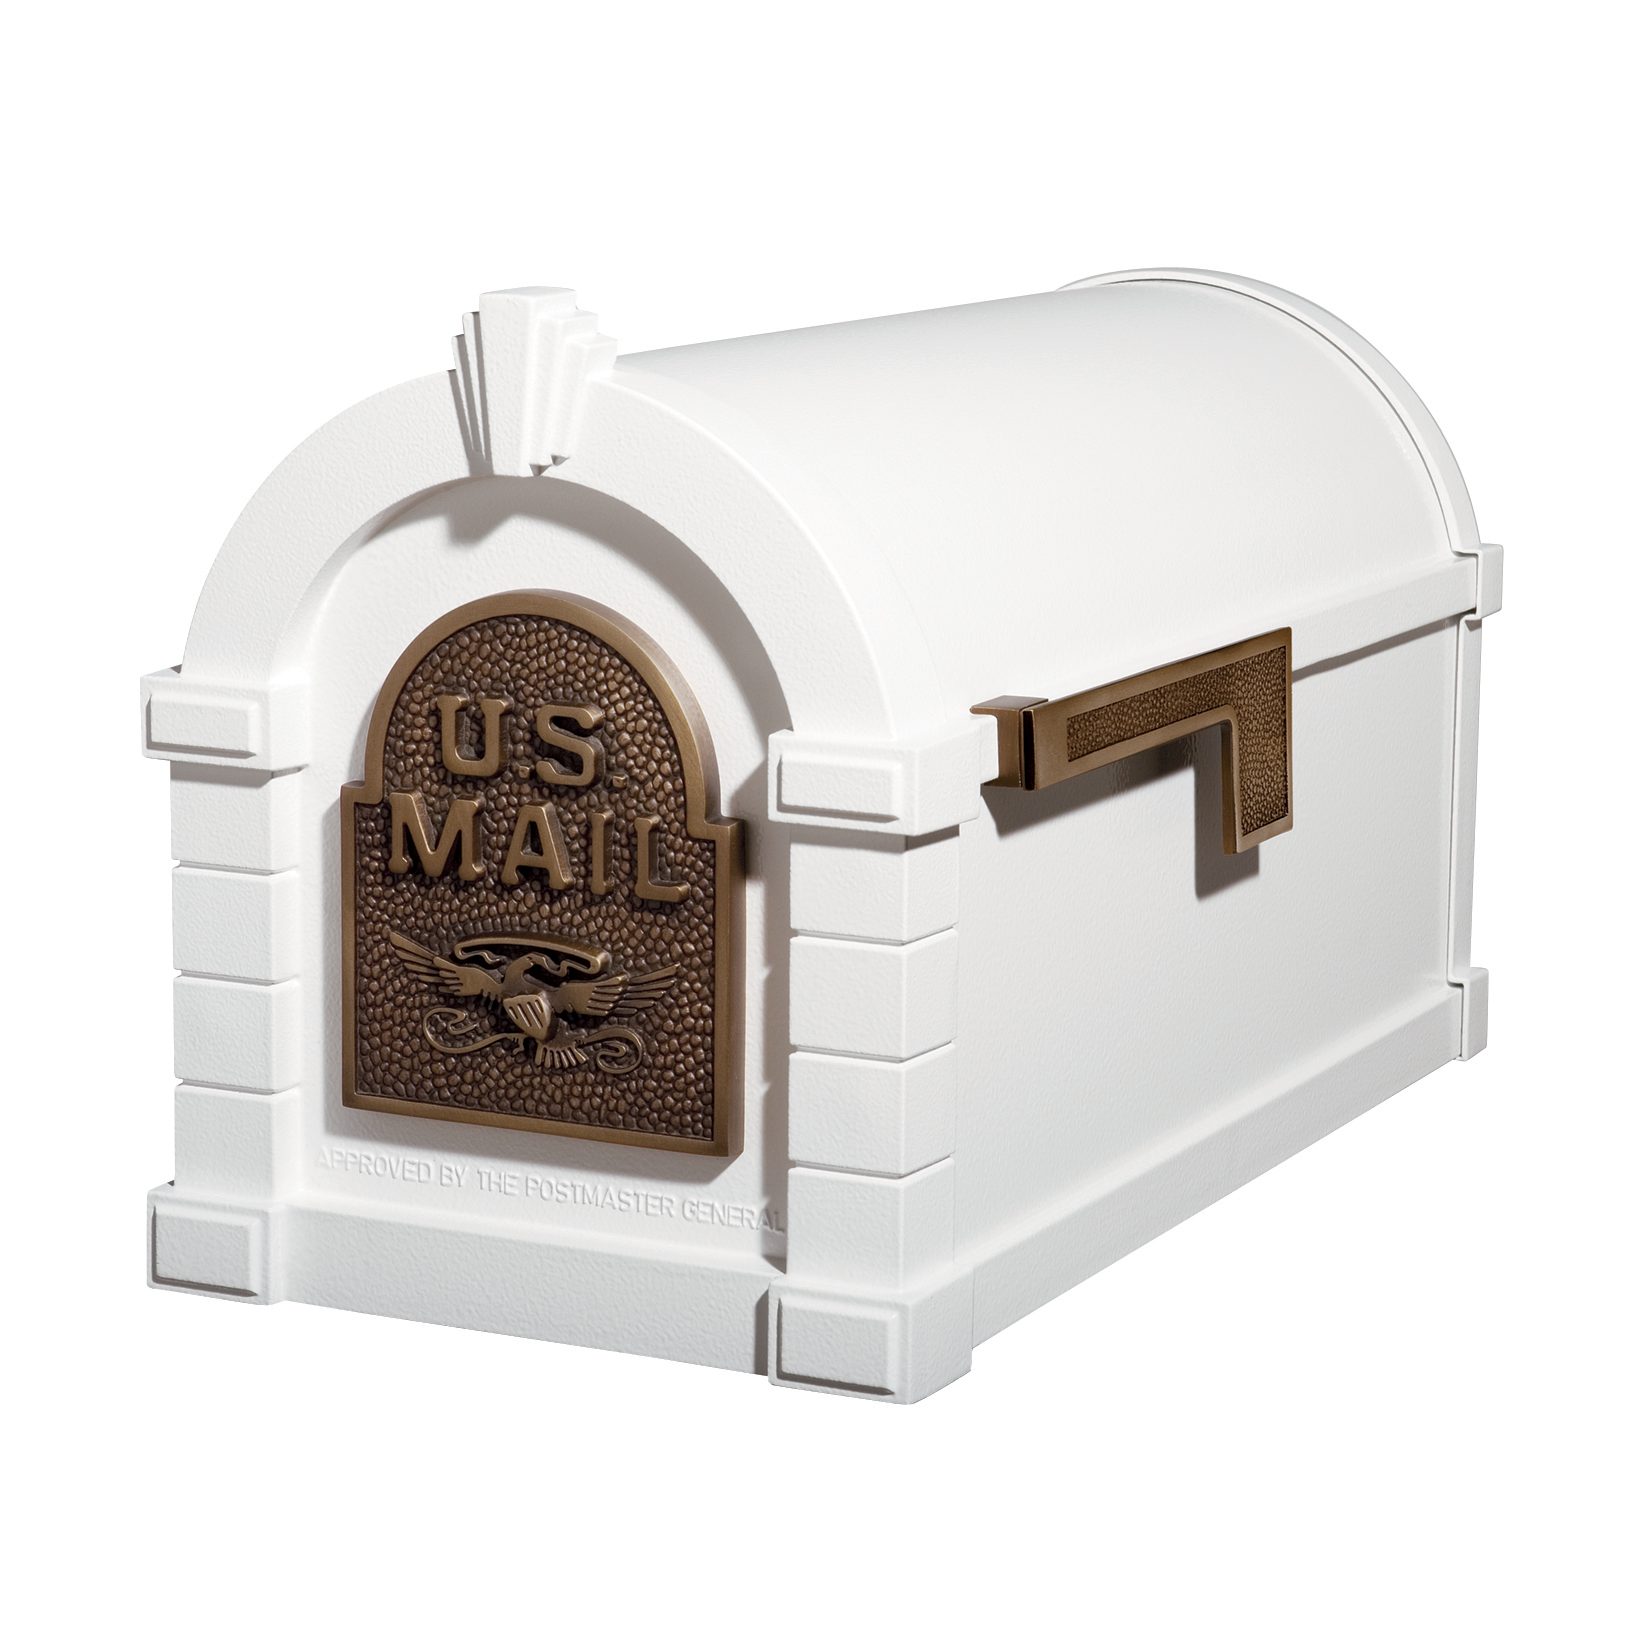 Gaines Eagle Keystone Mailboxes - White with Antique Bronze